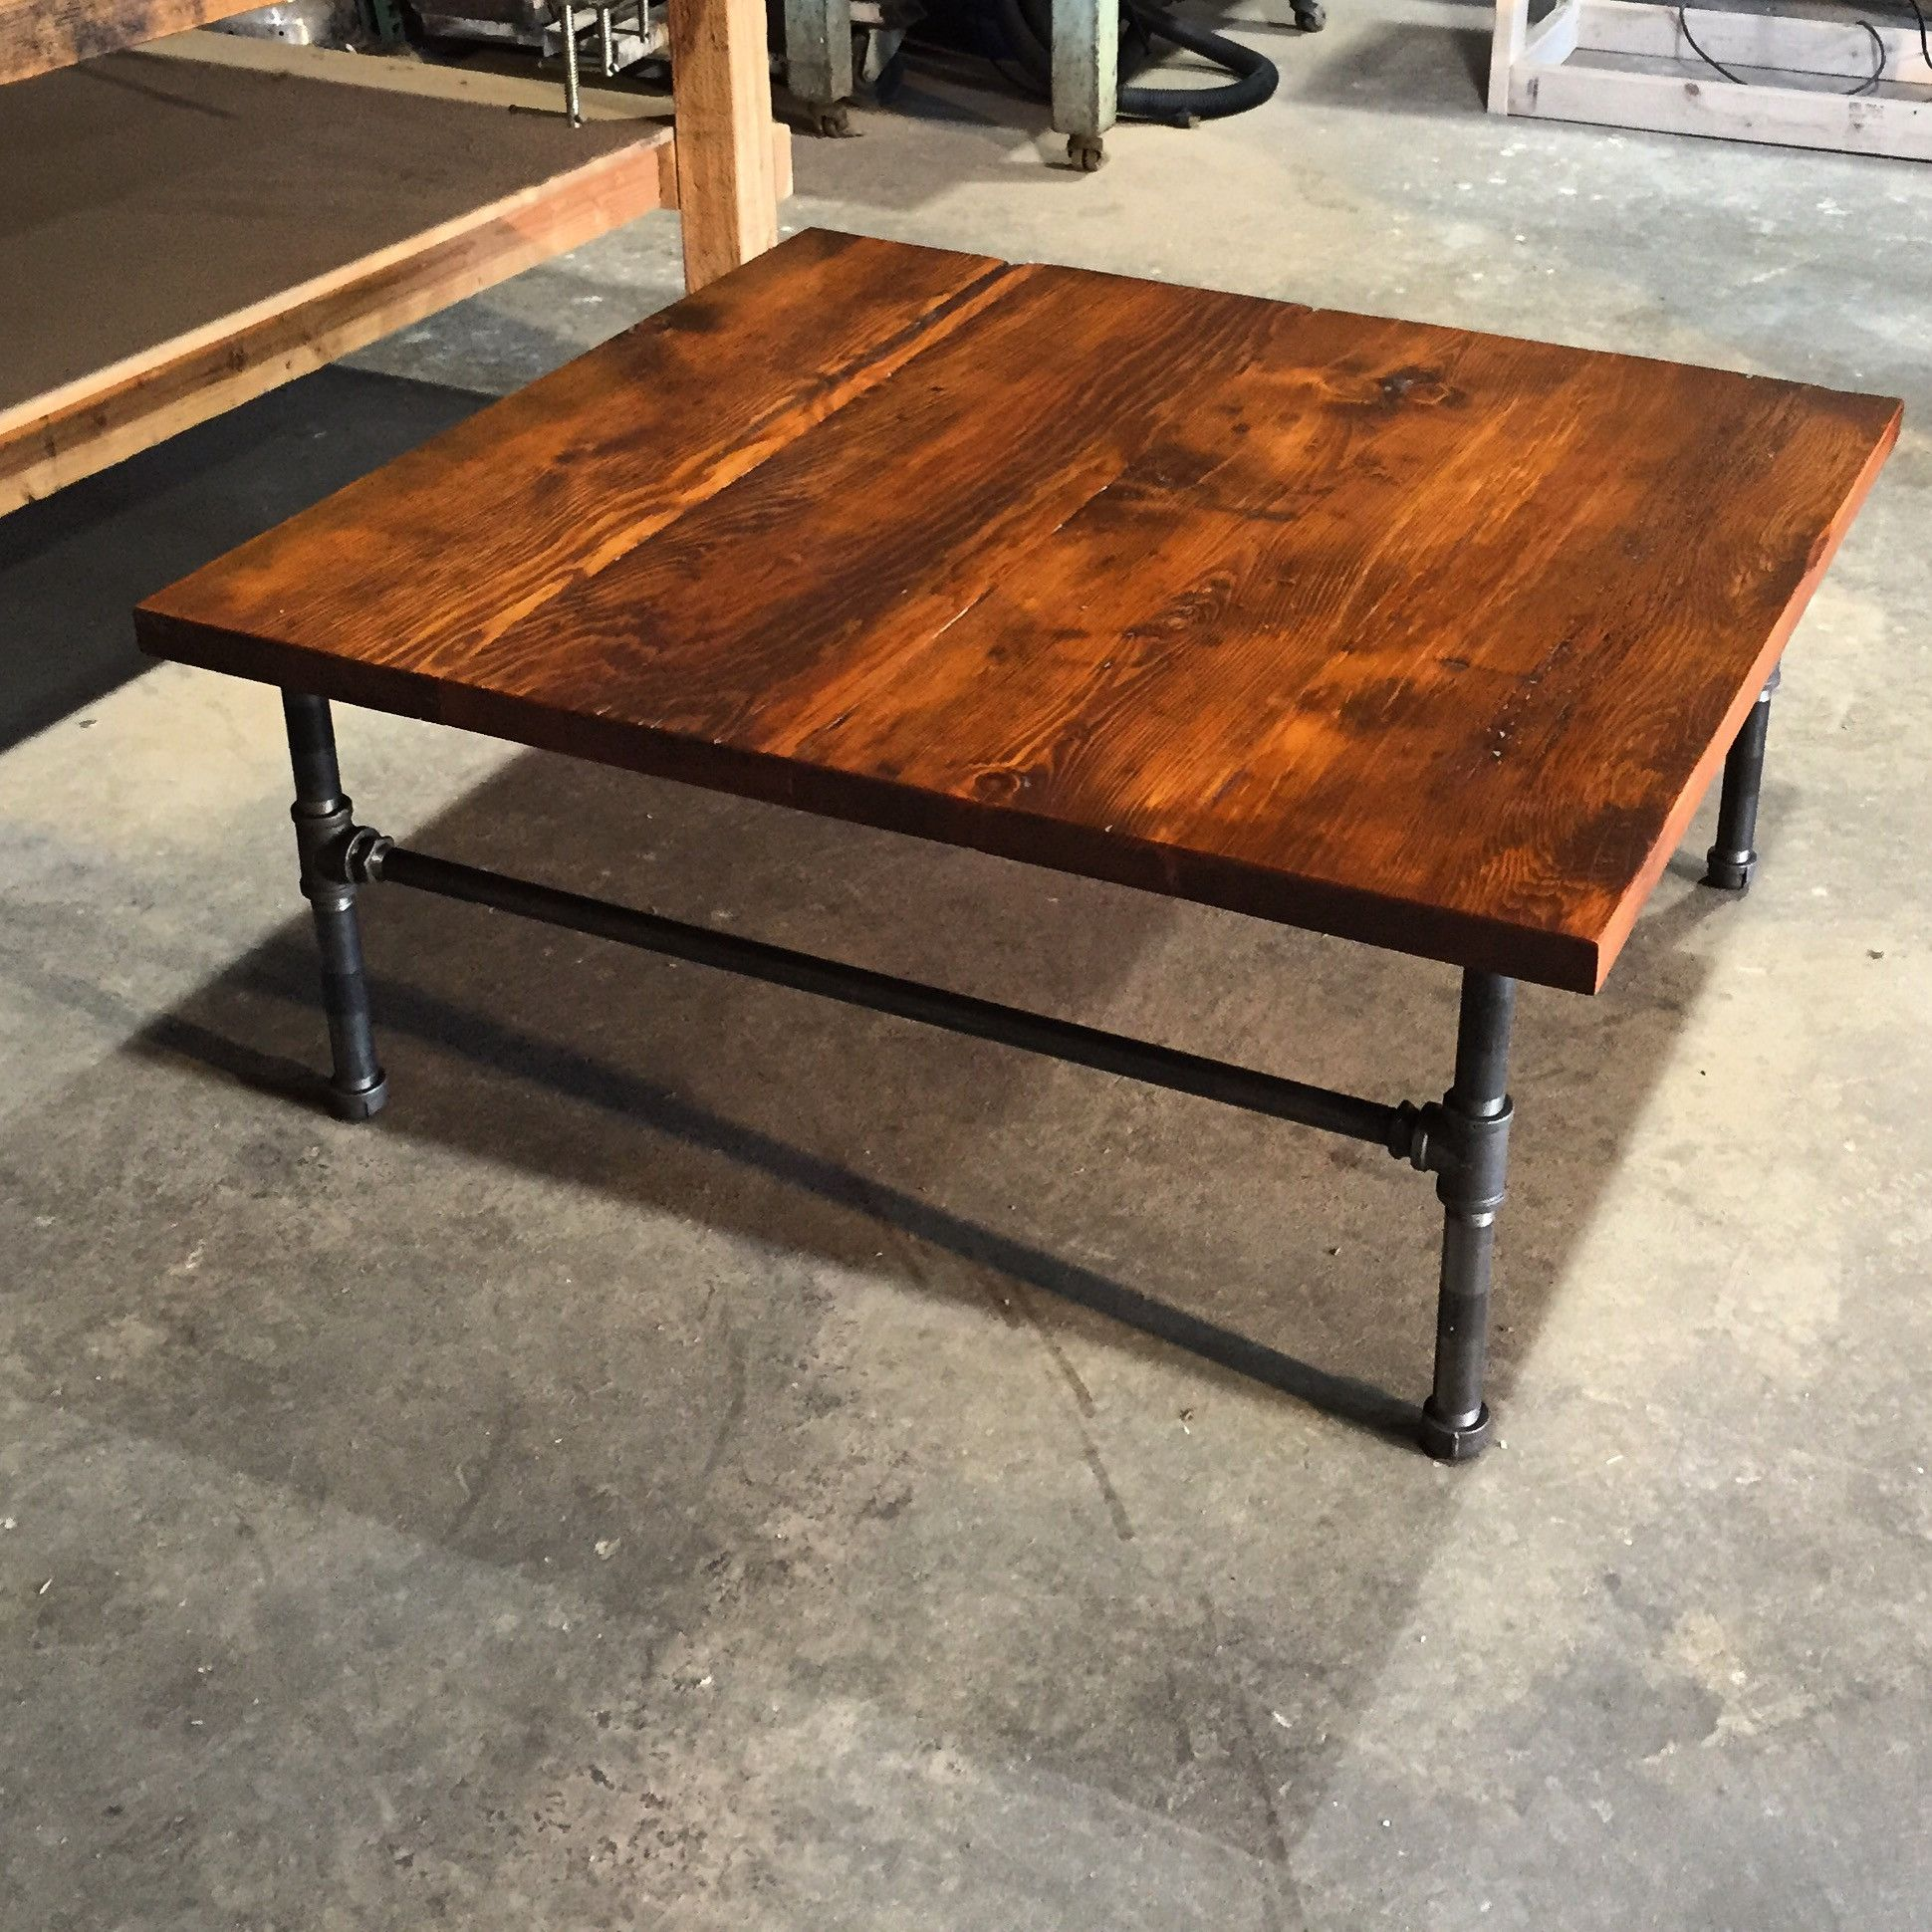 77 Square Reclaimed Wood Coffee Table Cool Apartment Furniture Check More At Http